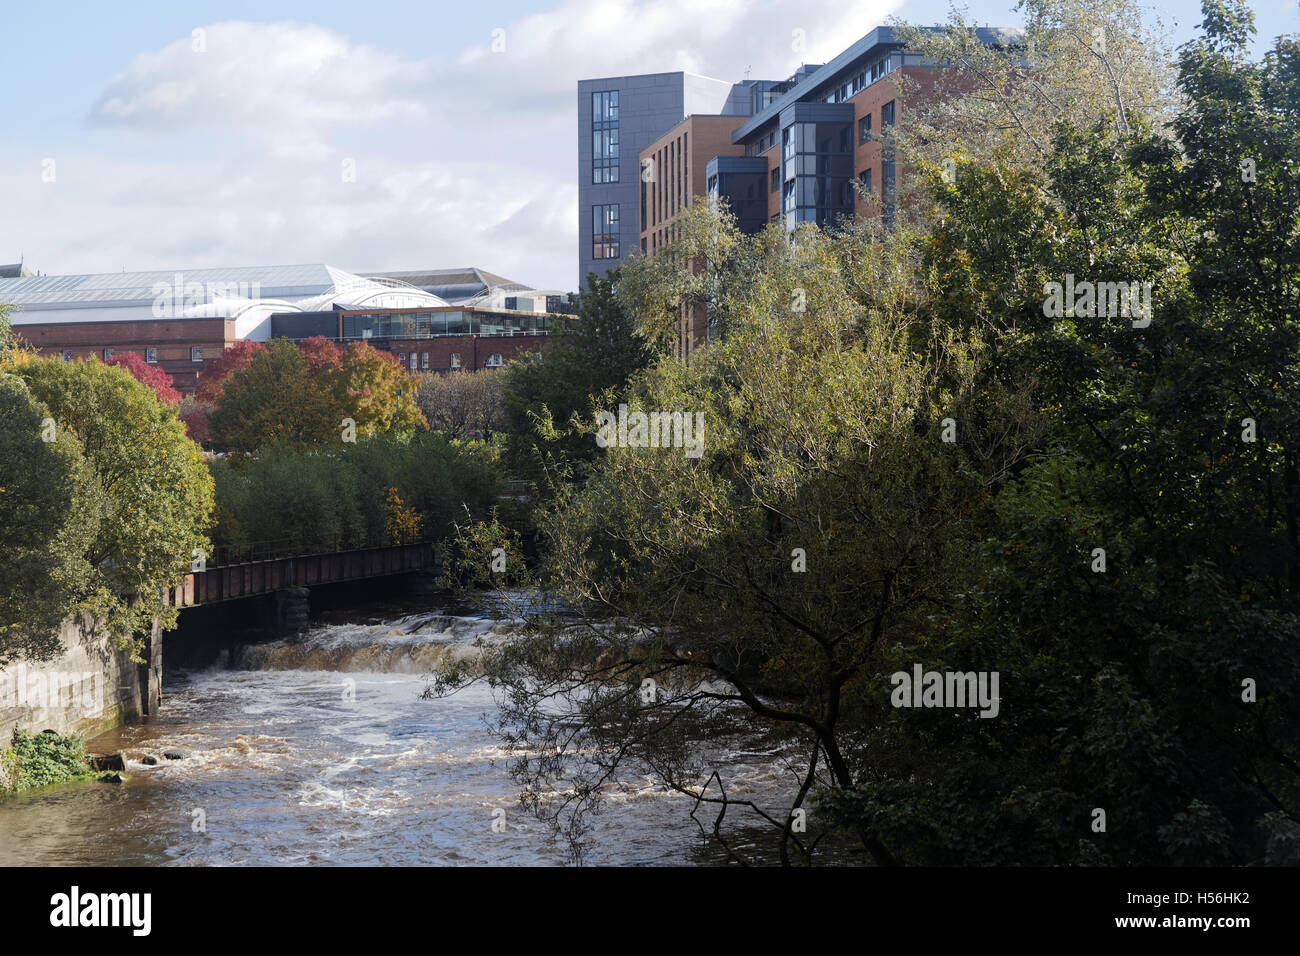 Kelvin River at Partick Glasgow looking North on Benalder Street bridge - Stock Image